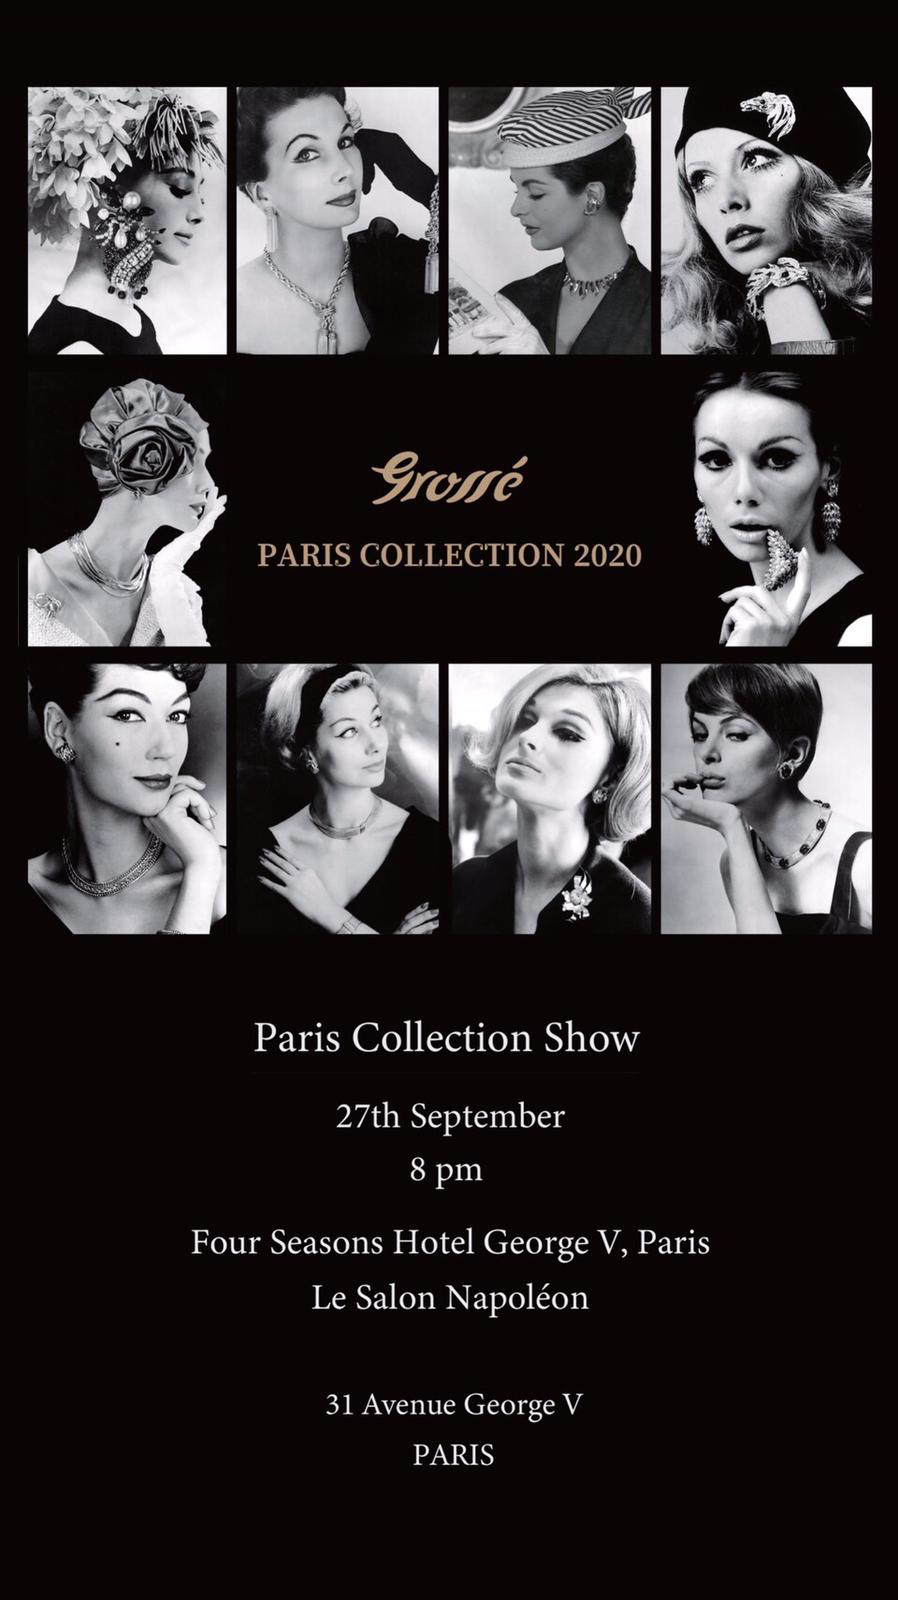 Grossé Paris Collection